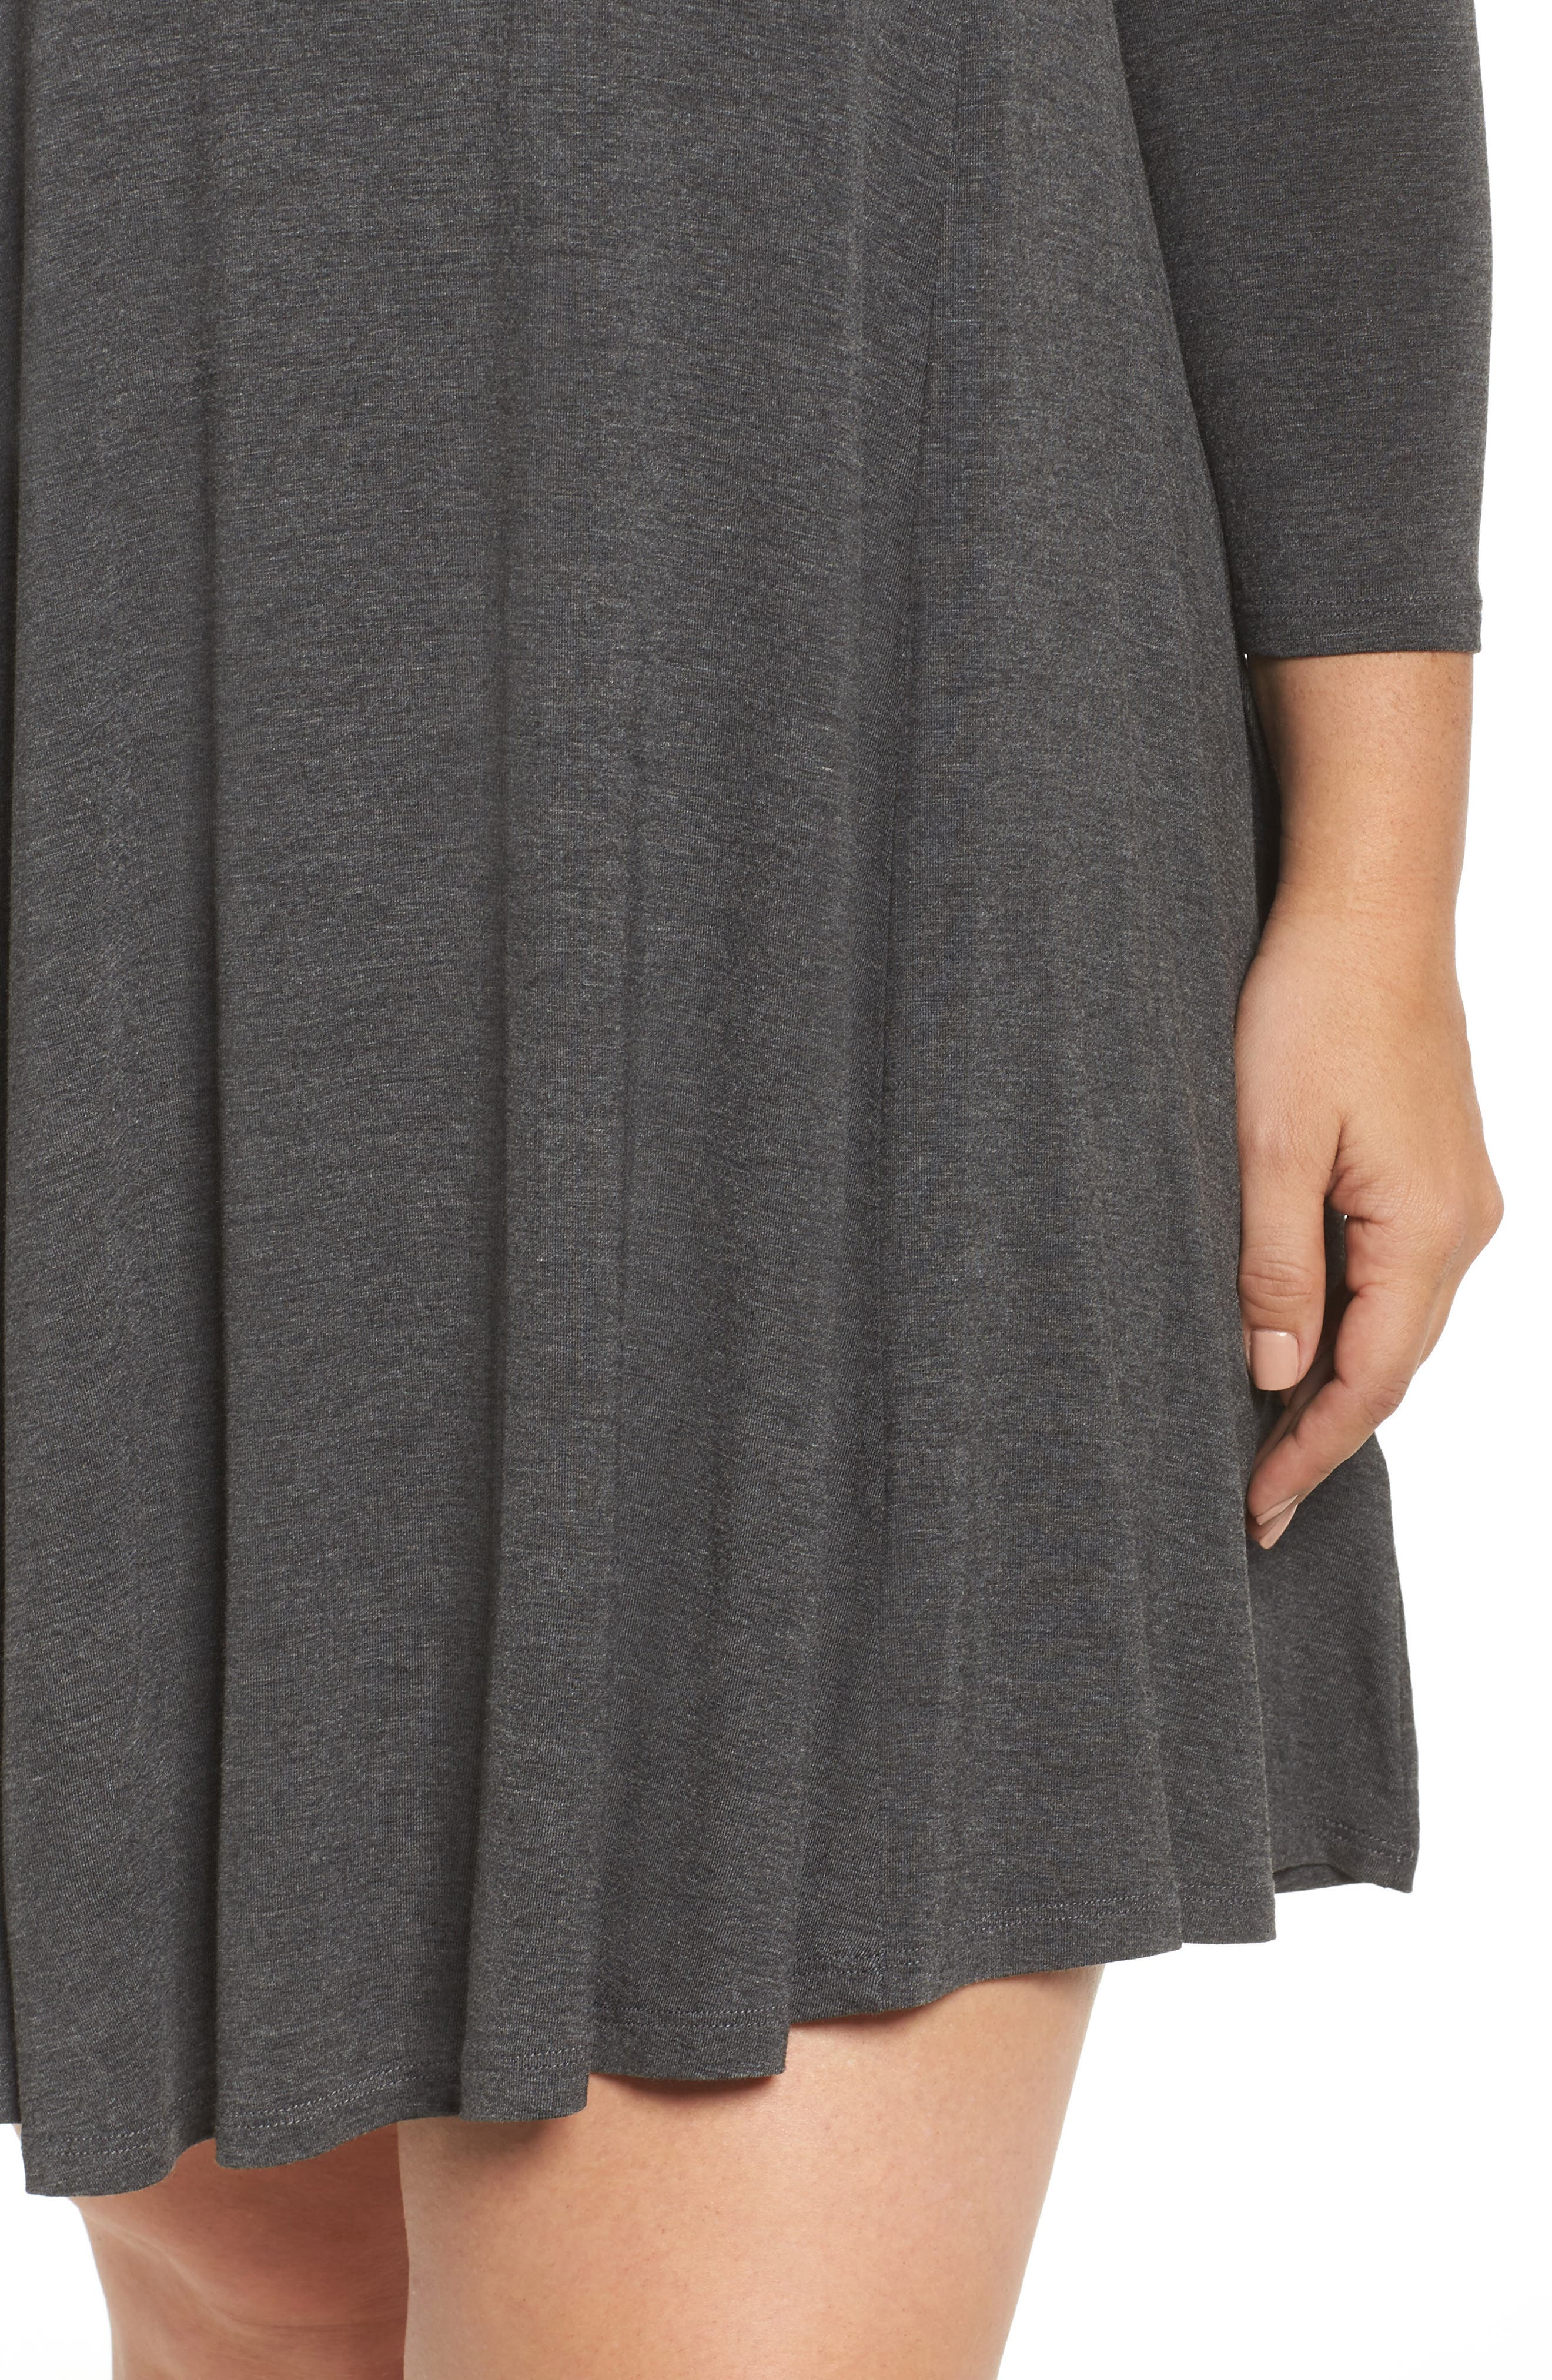 Swing Dress,                             Alternate thumbnail 4, color,                             Charcoal Grey